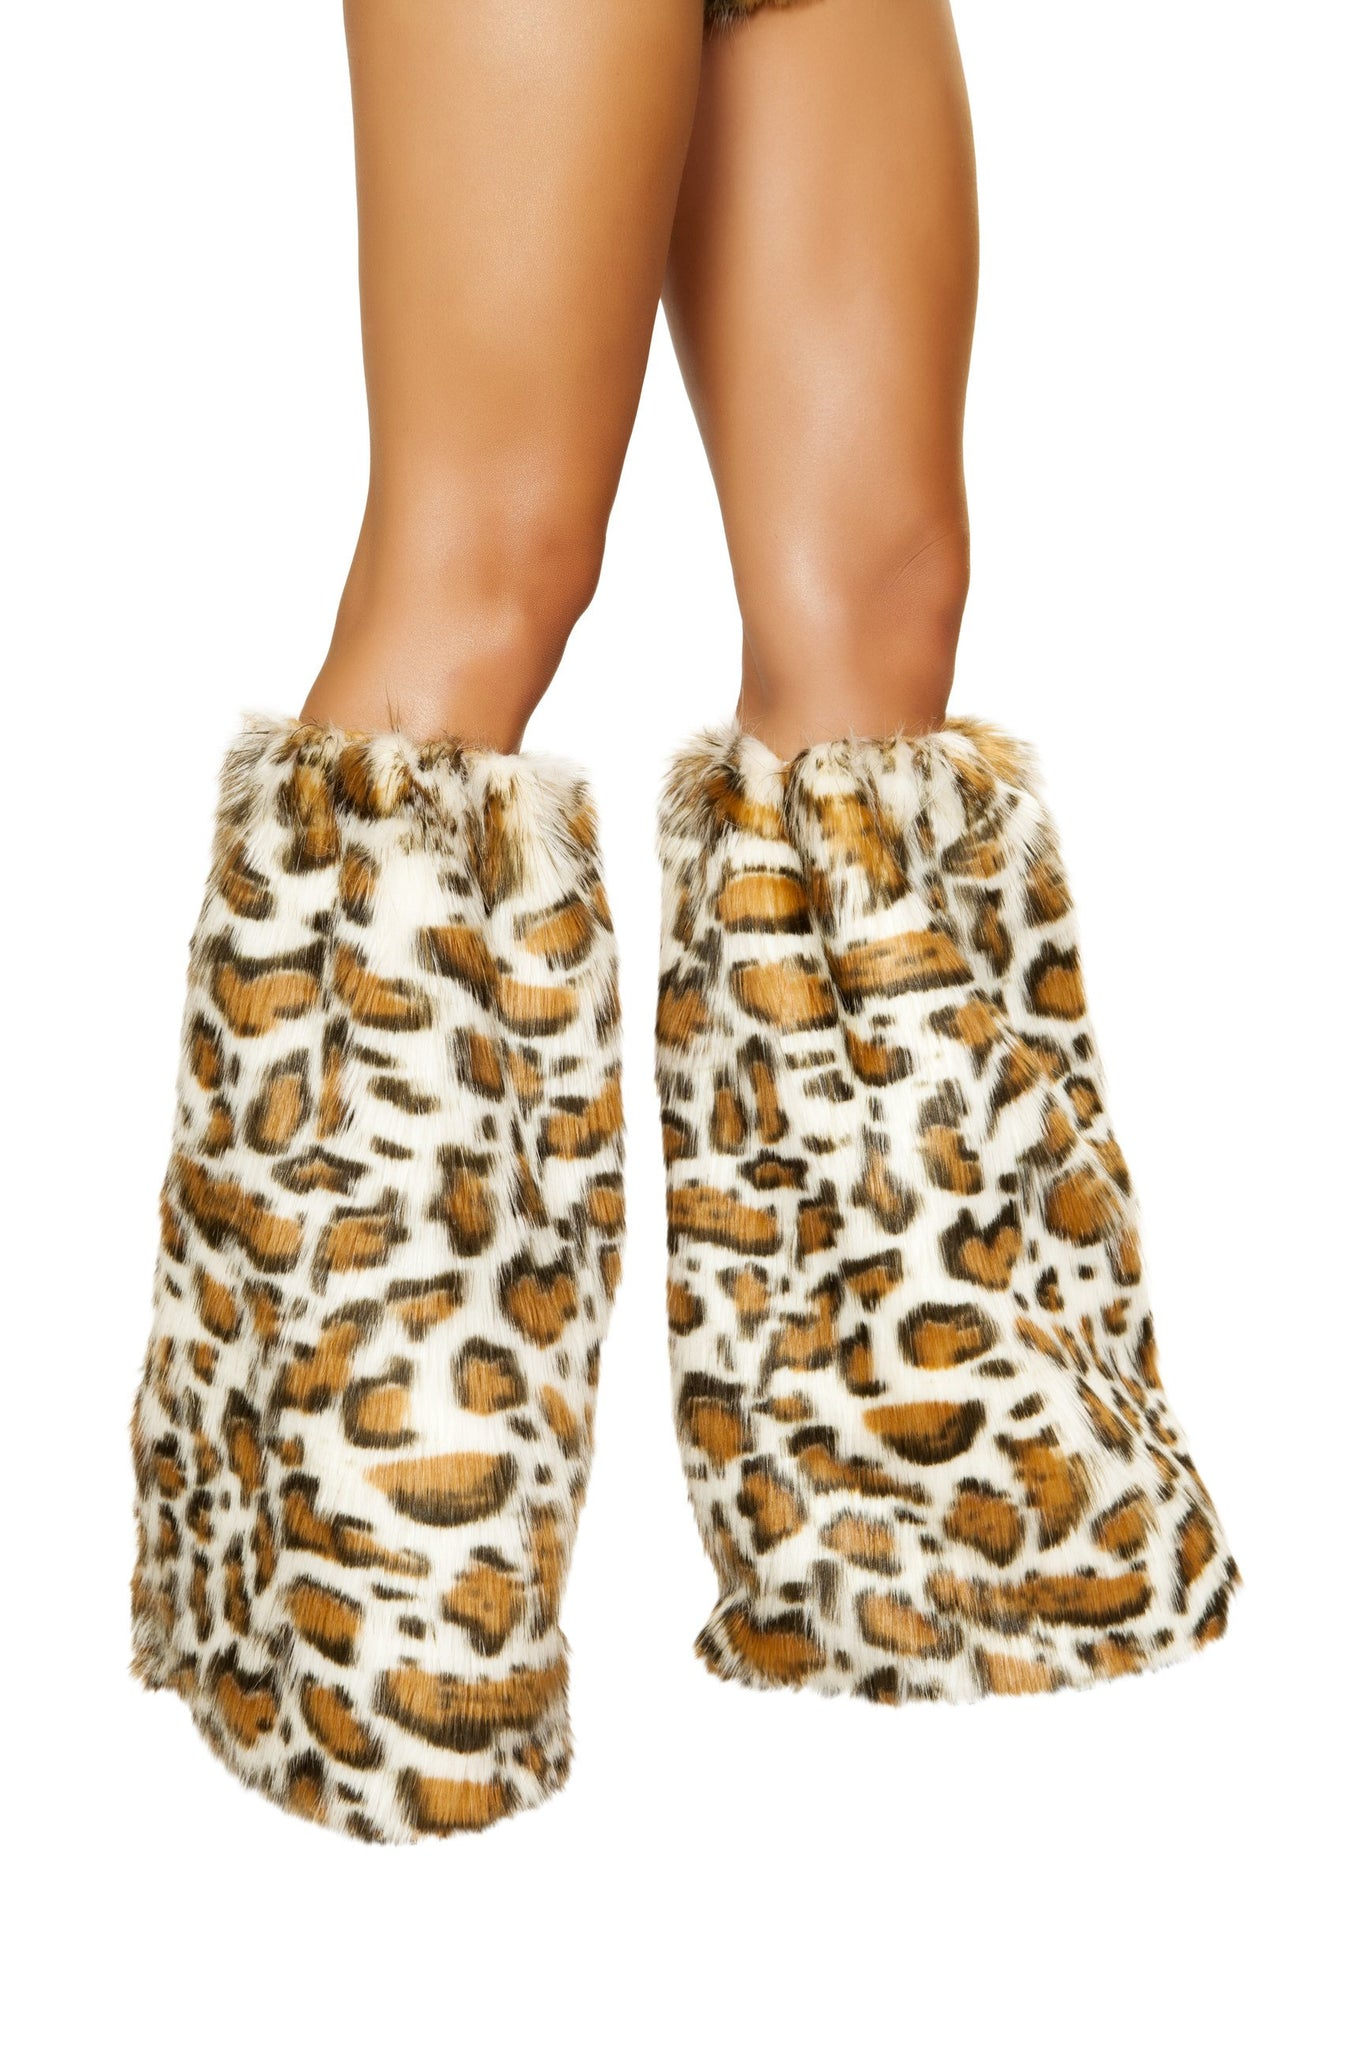 4890 - Roma Costume Pair of Leopard Leg Warmers